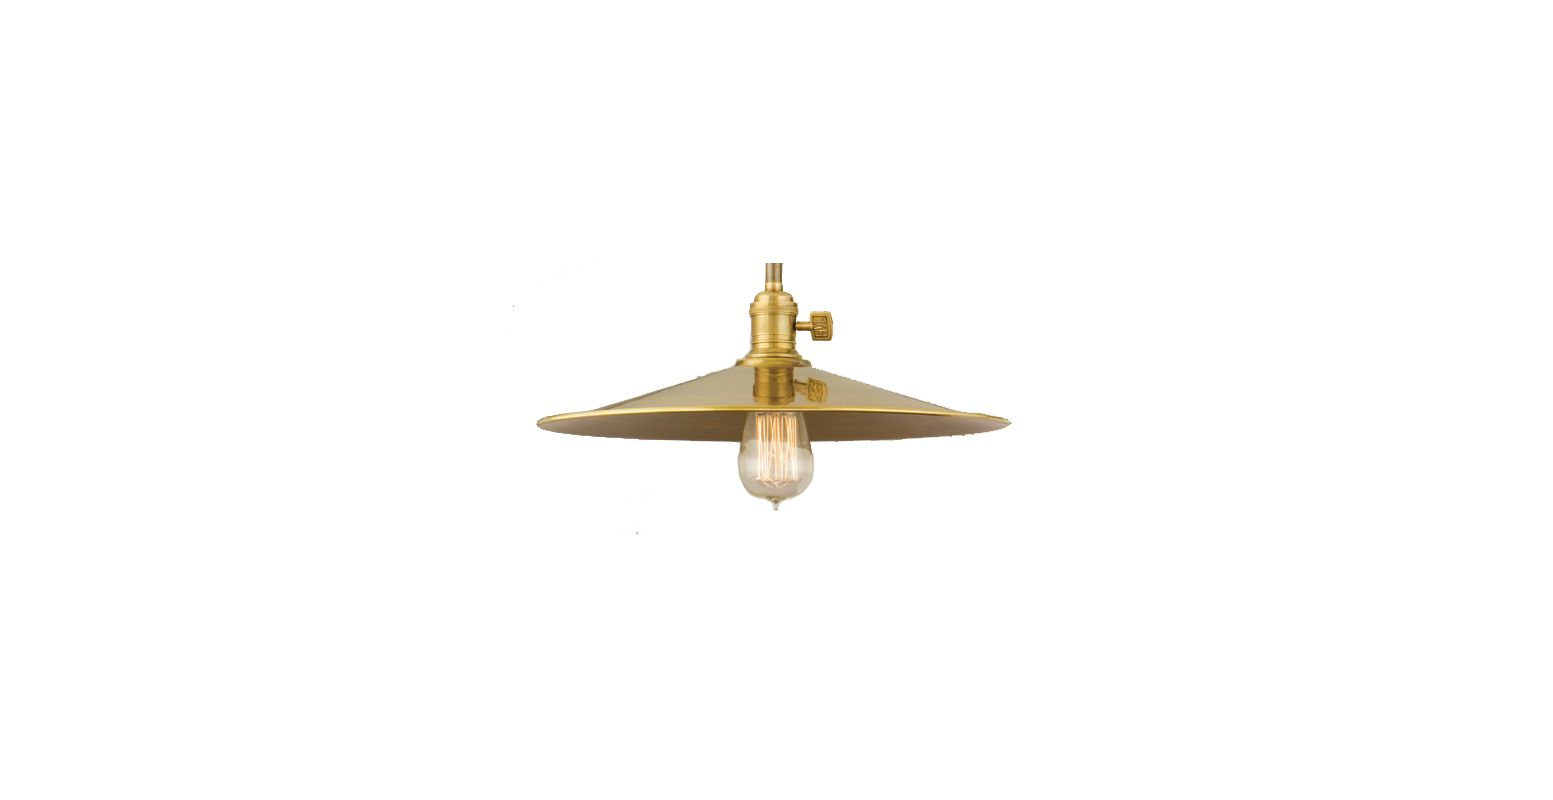 Hudson Valley 8001-AGB-MM1 Aged Brass Industrial Heirloom Pendant Sale $386.00 ITEM: bci1737875 ID#:8001-AGB-MM1 UPC: 806134103453 :